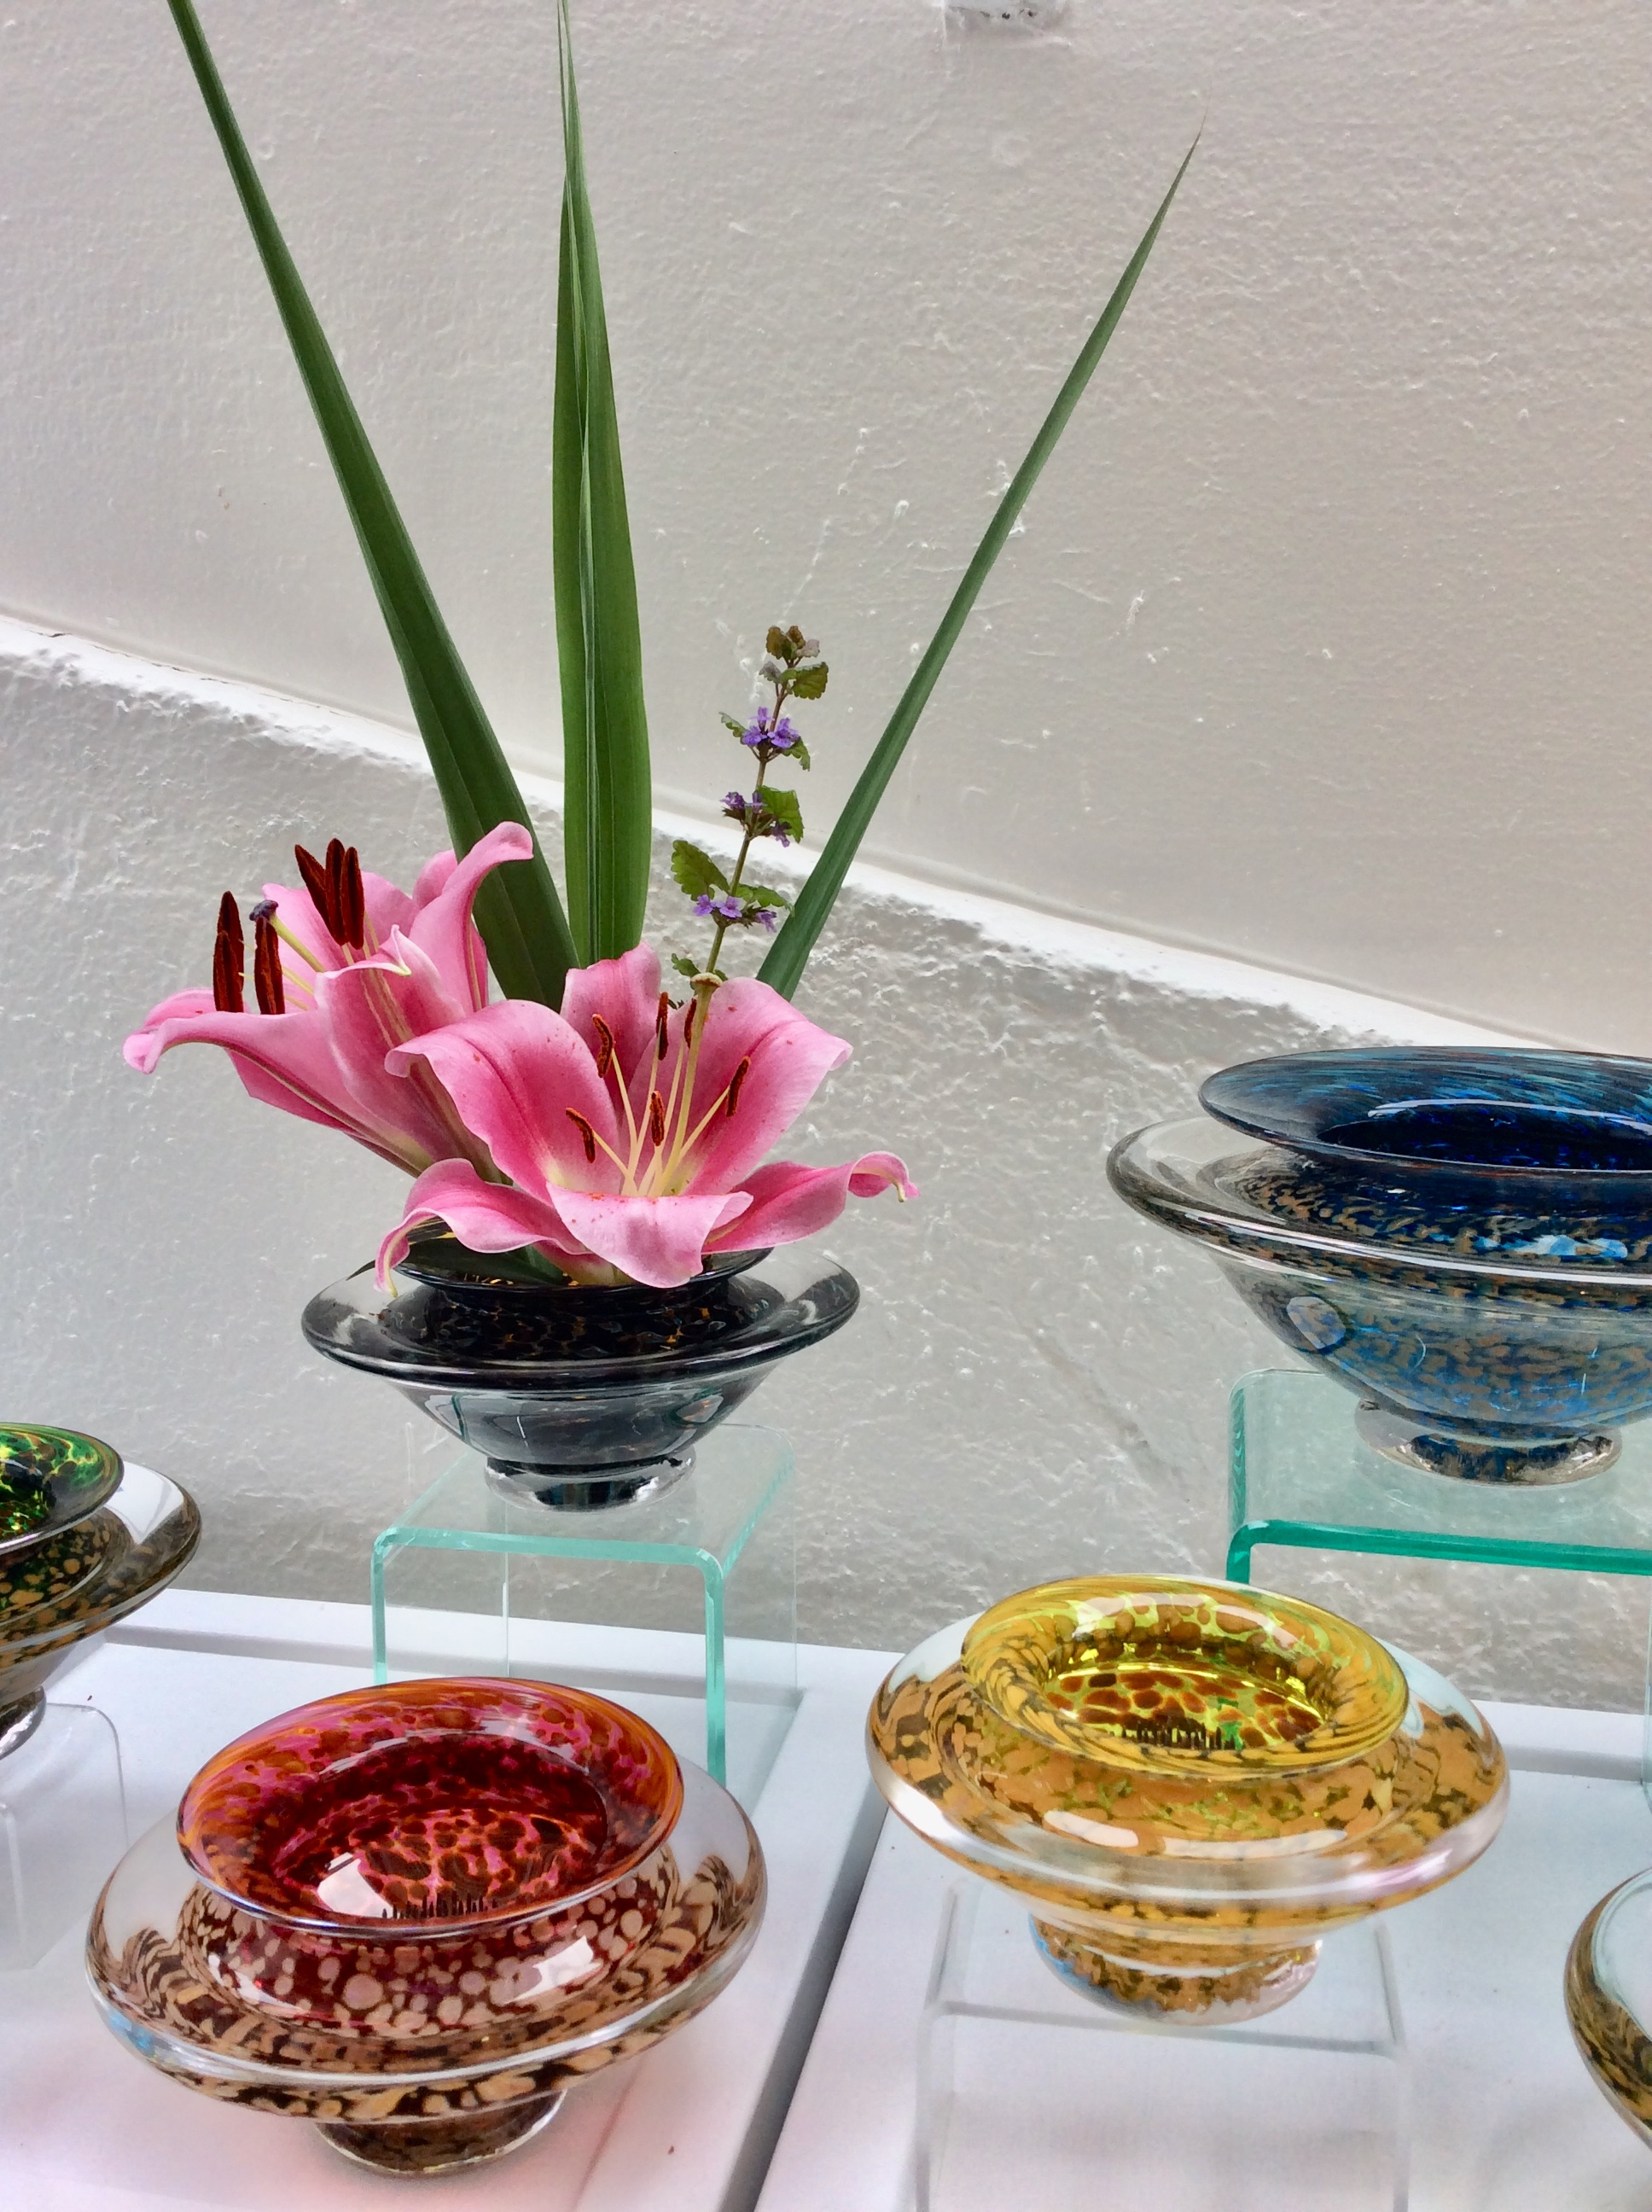 Ikebana by Danielle Blade at Rachel K DeLong Gallery